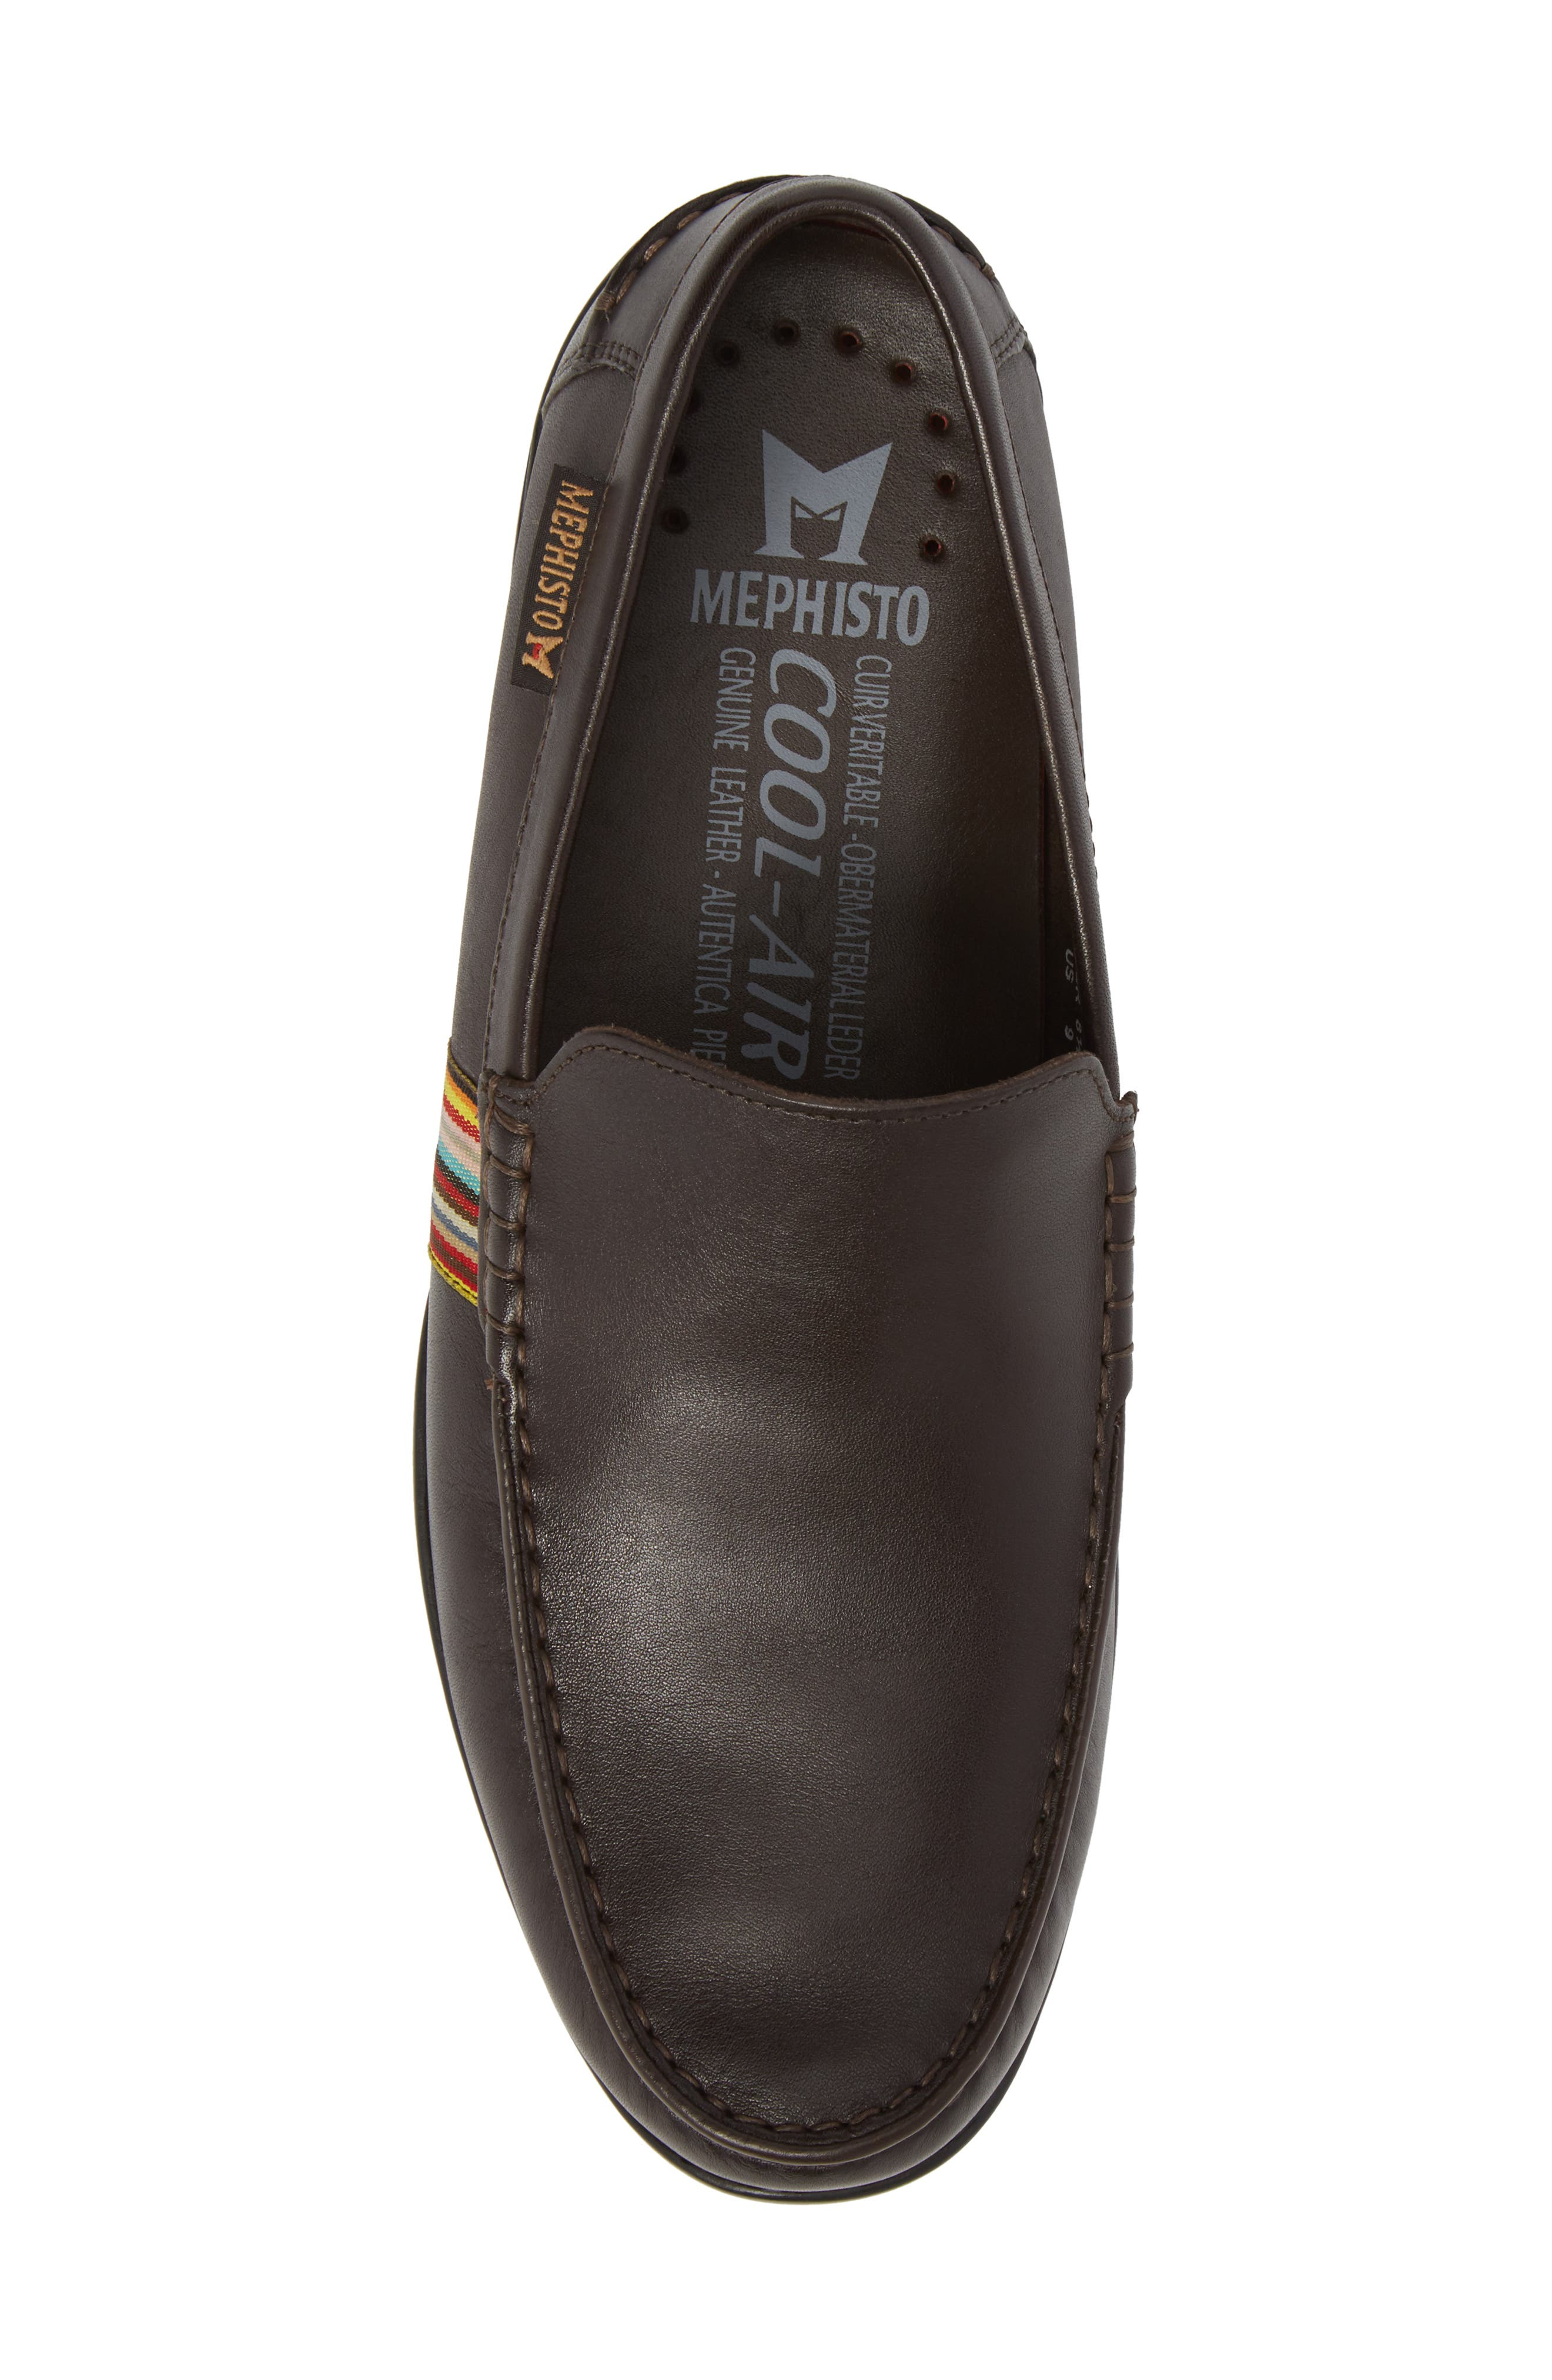 Idris Banded Loafer,                             Alternate thumbnail 5, color,                             Dark Brown Leather